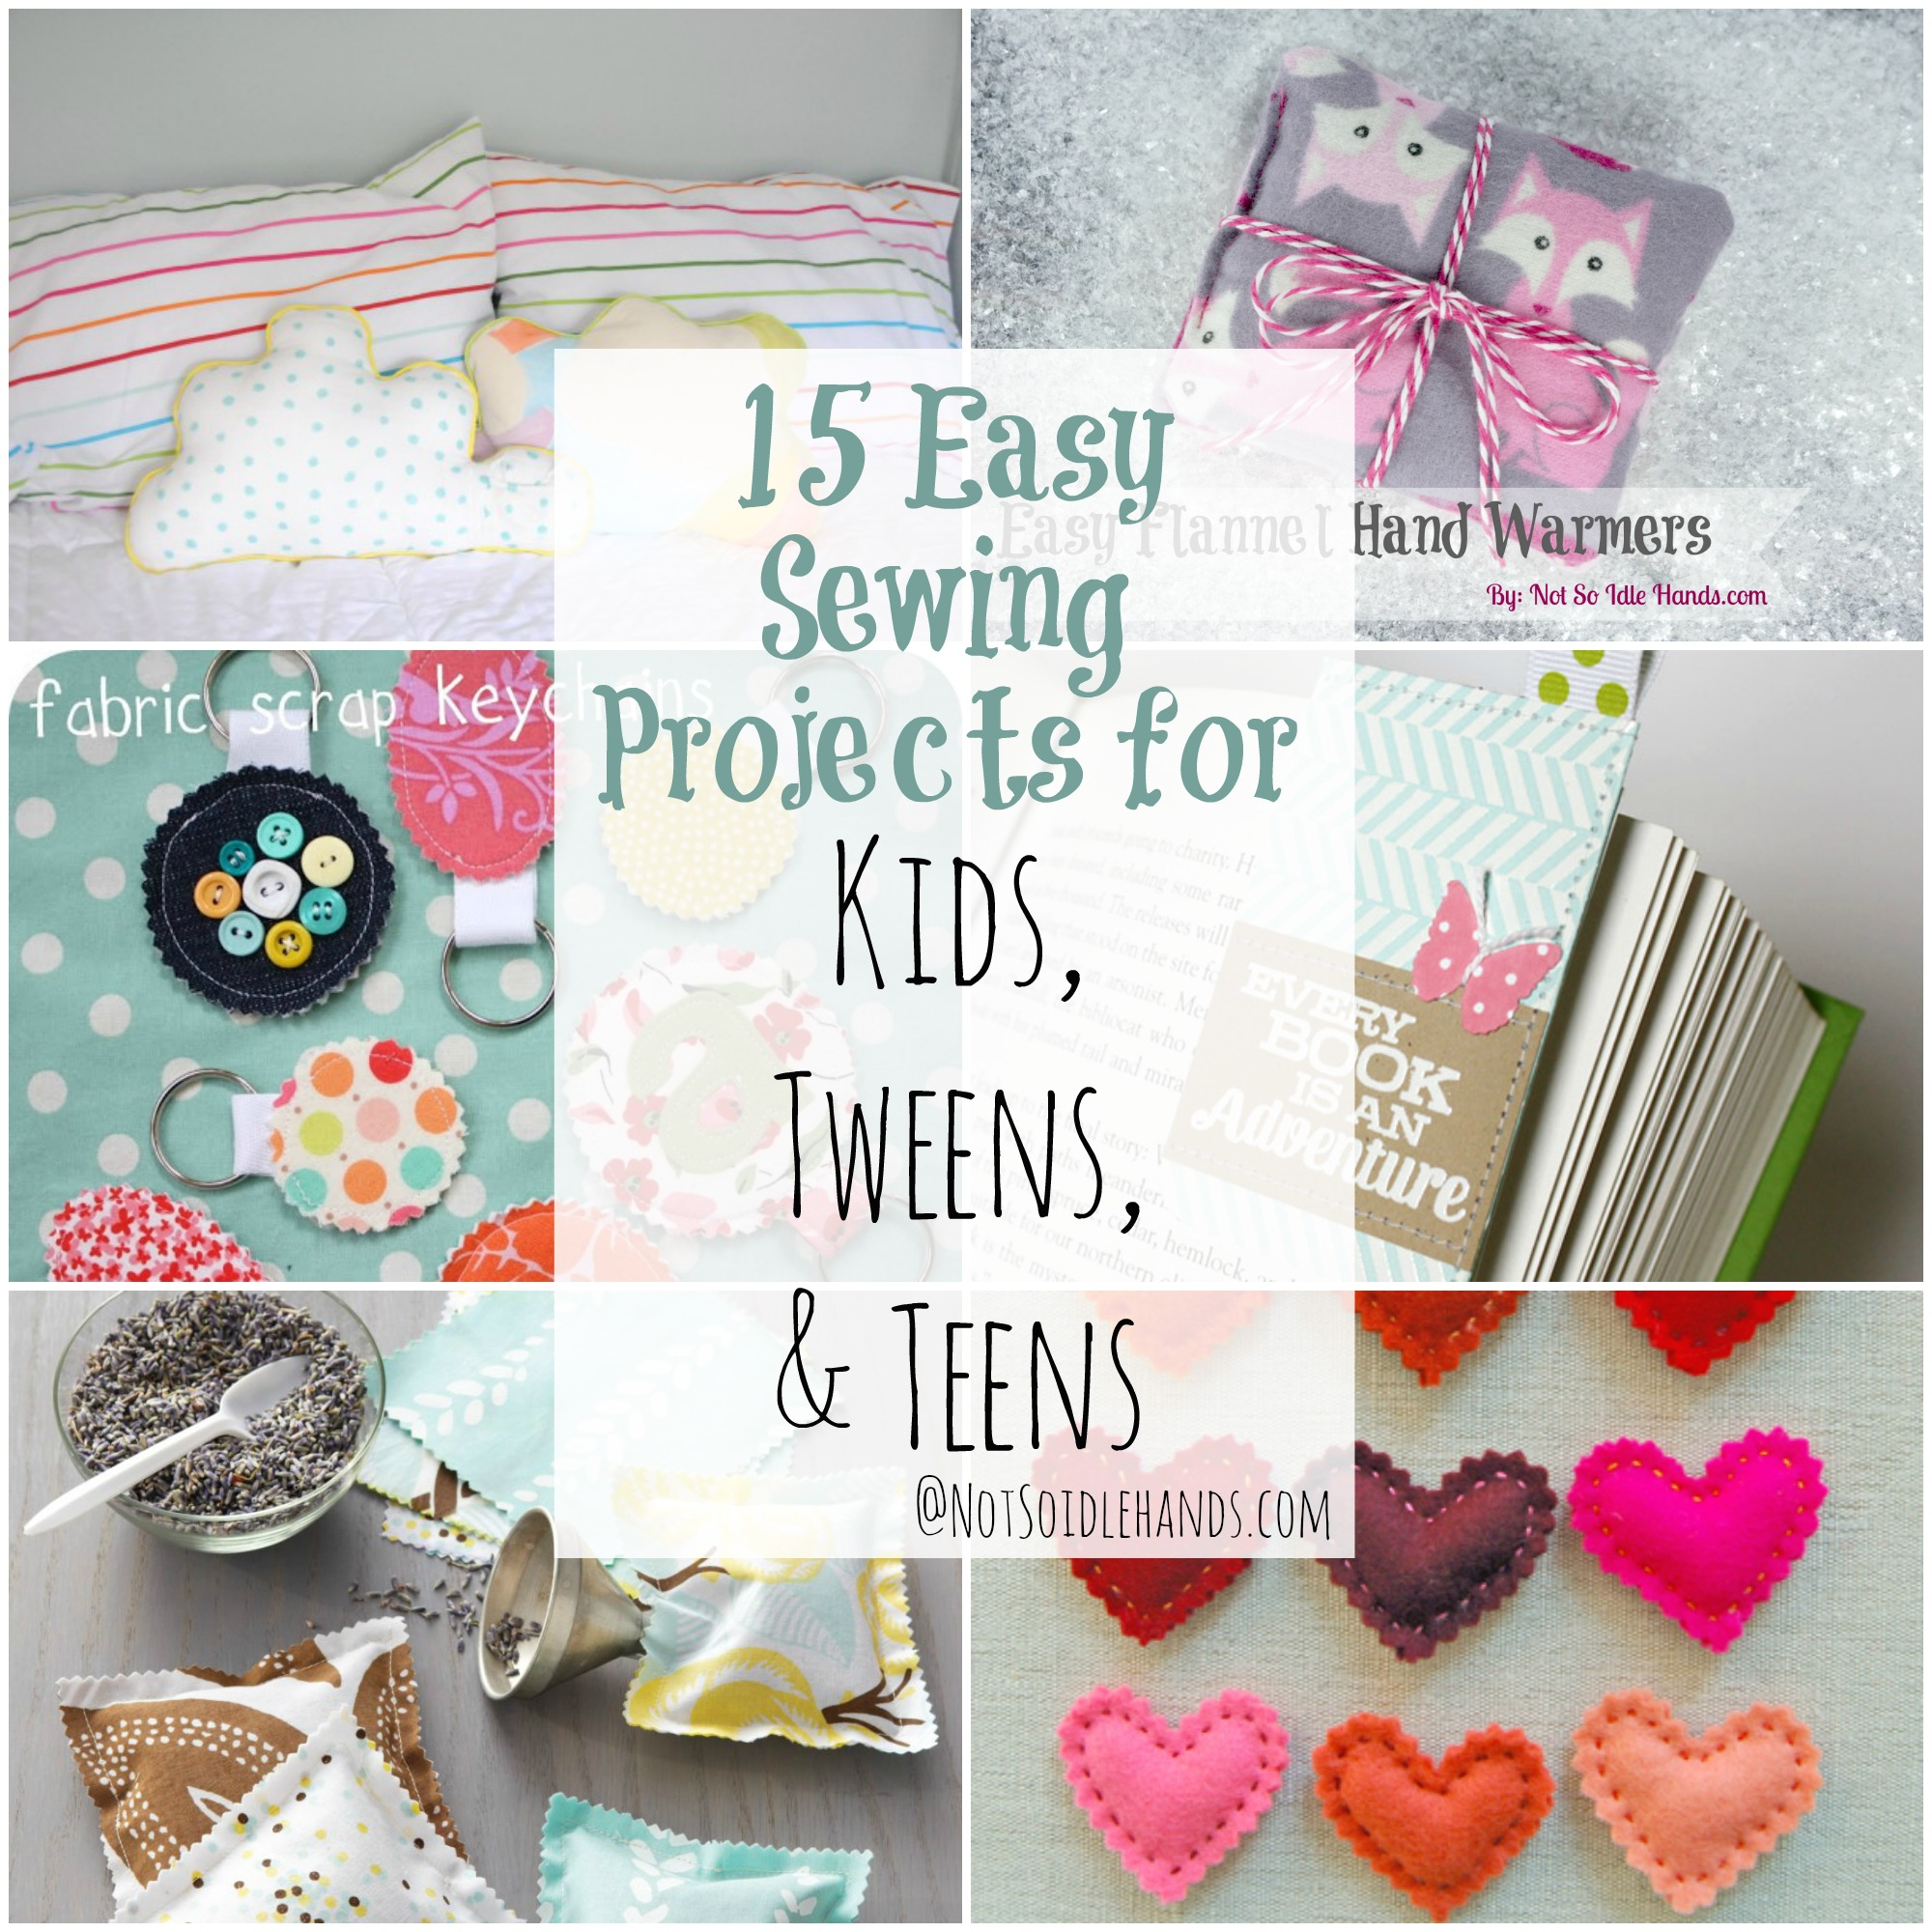 Easy Hand Sewing Projects For Kids 15 Easy Sewing Projects For Kids Tweens And Teens